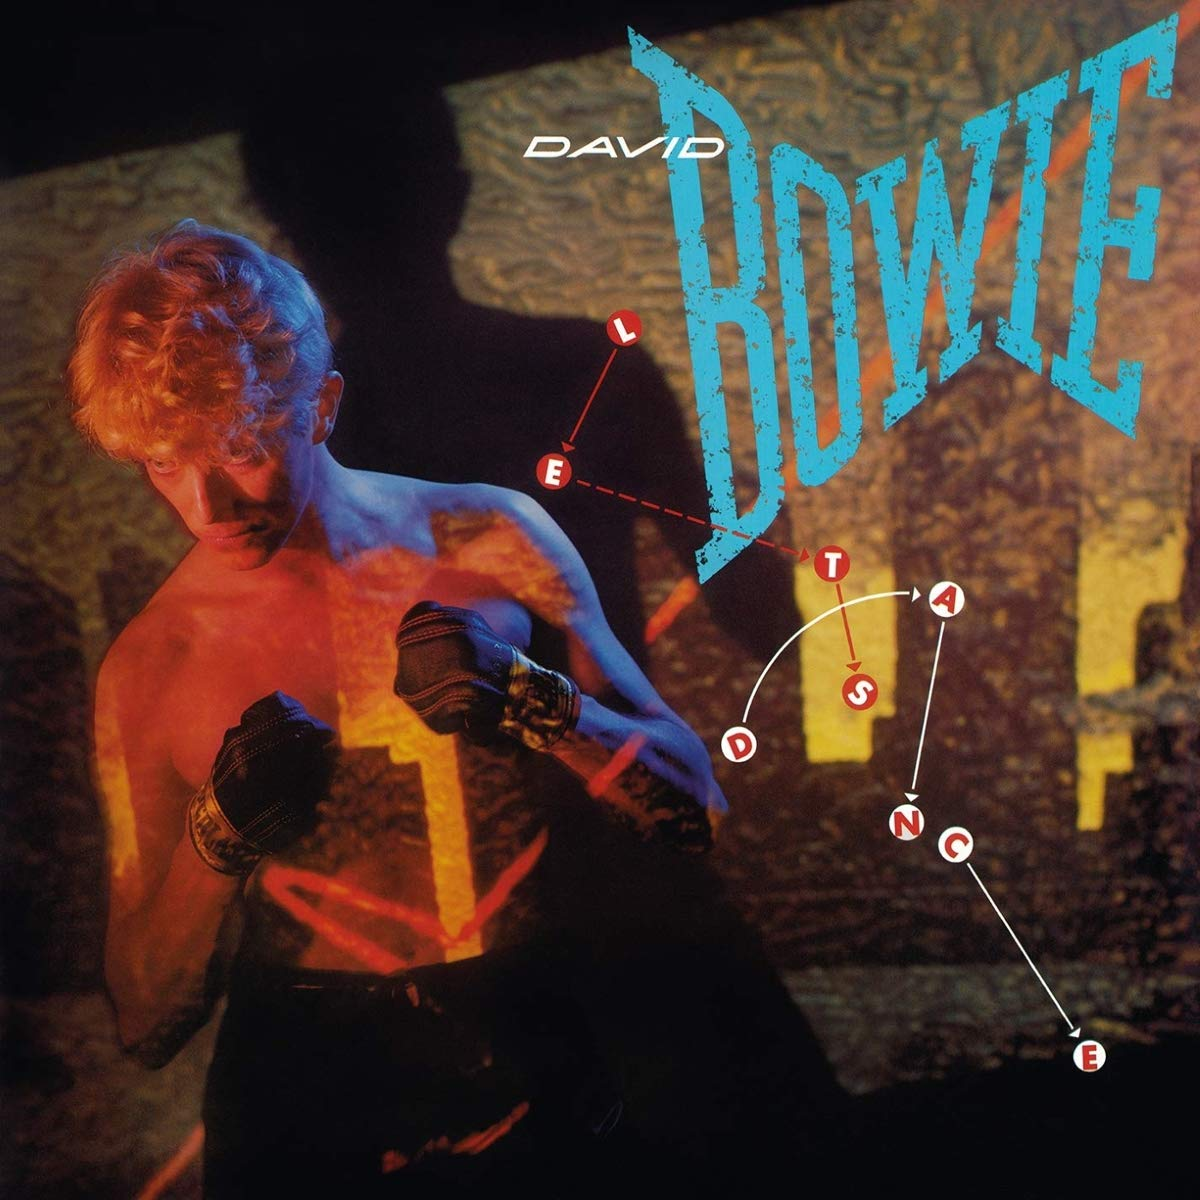 David Bowie - Let's Dance: 2018 Remastered Version [LP]